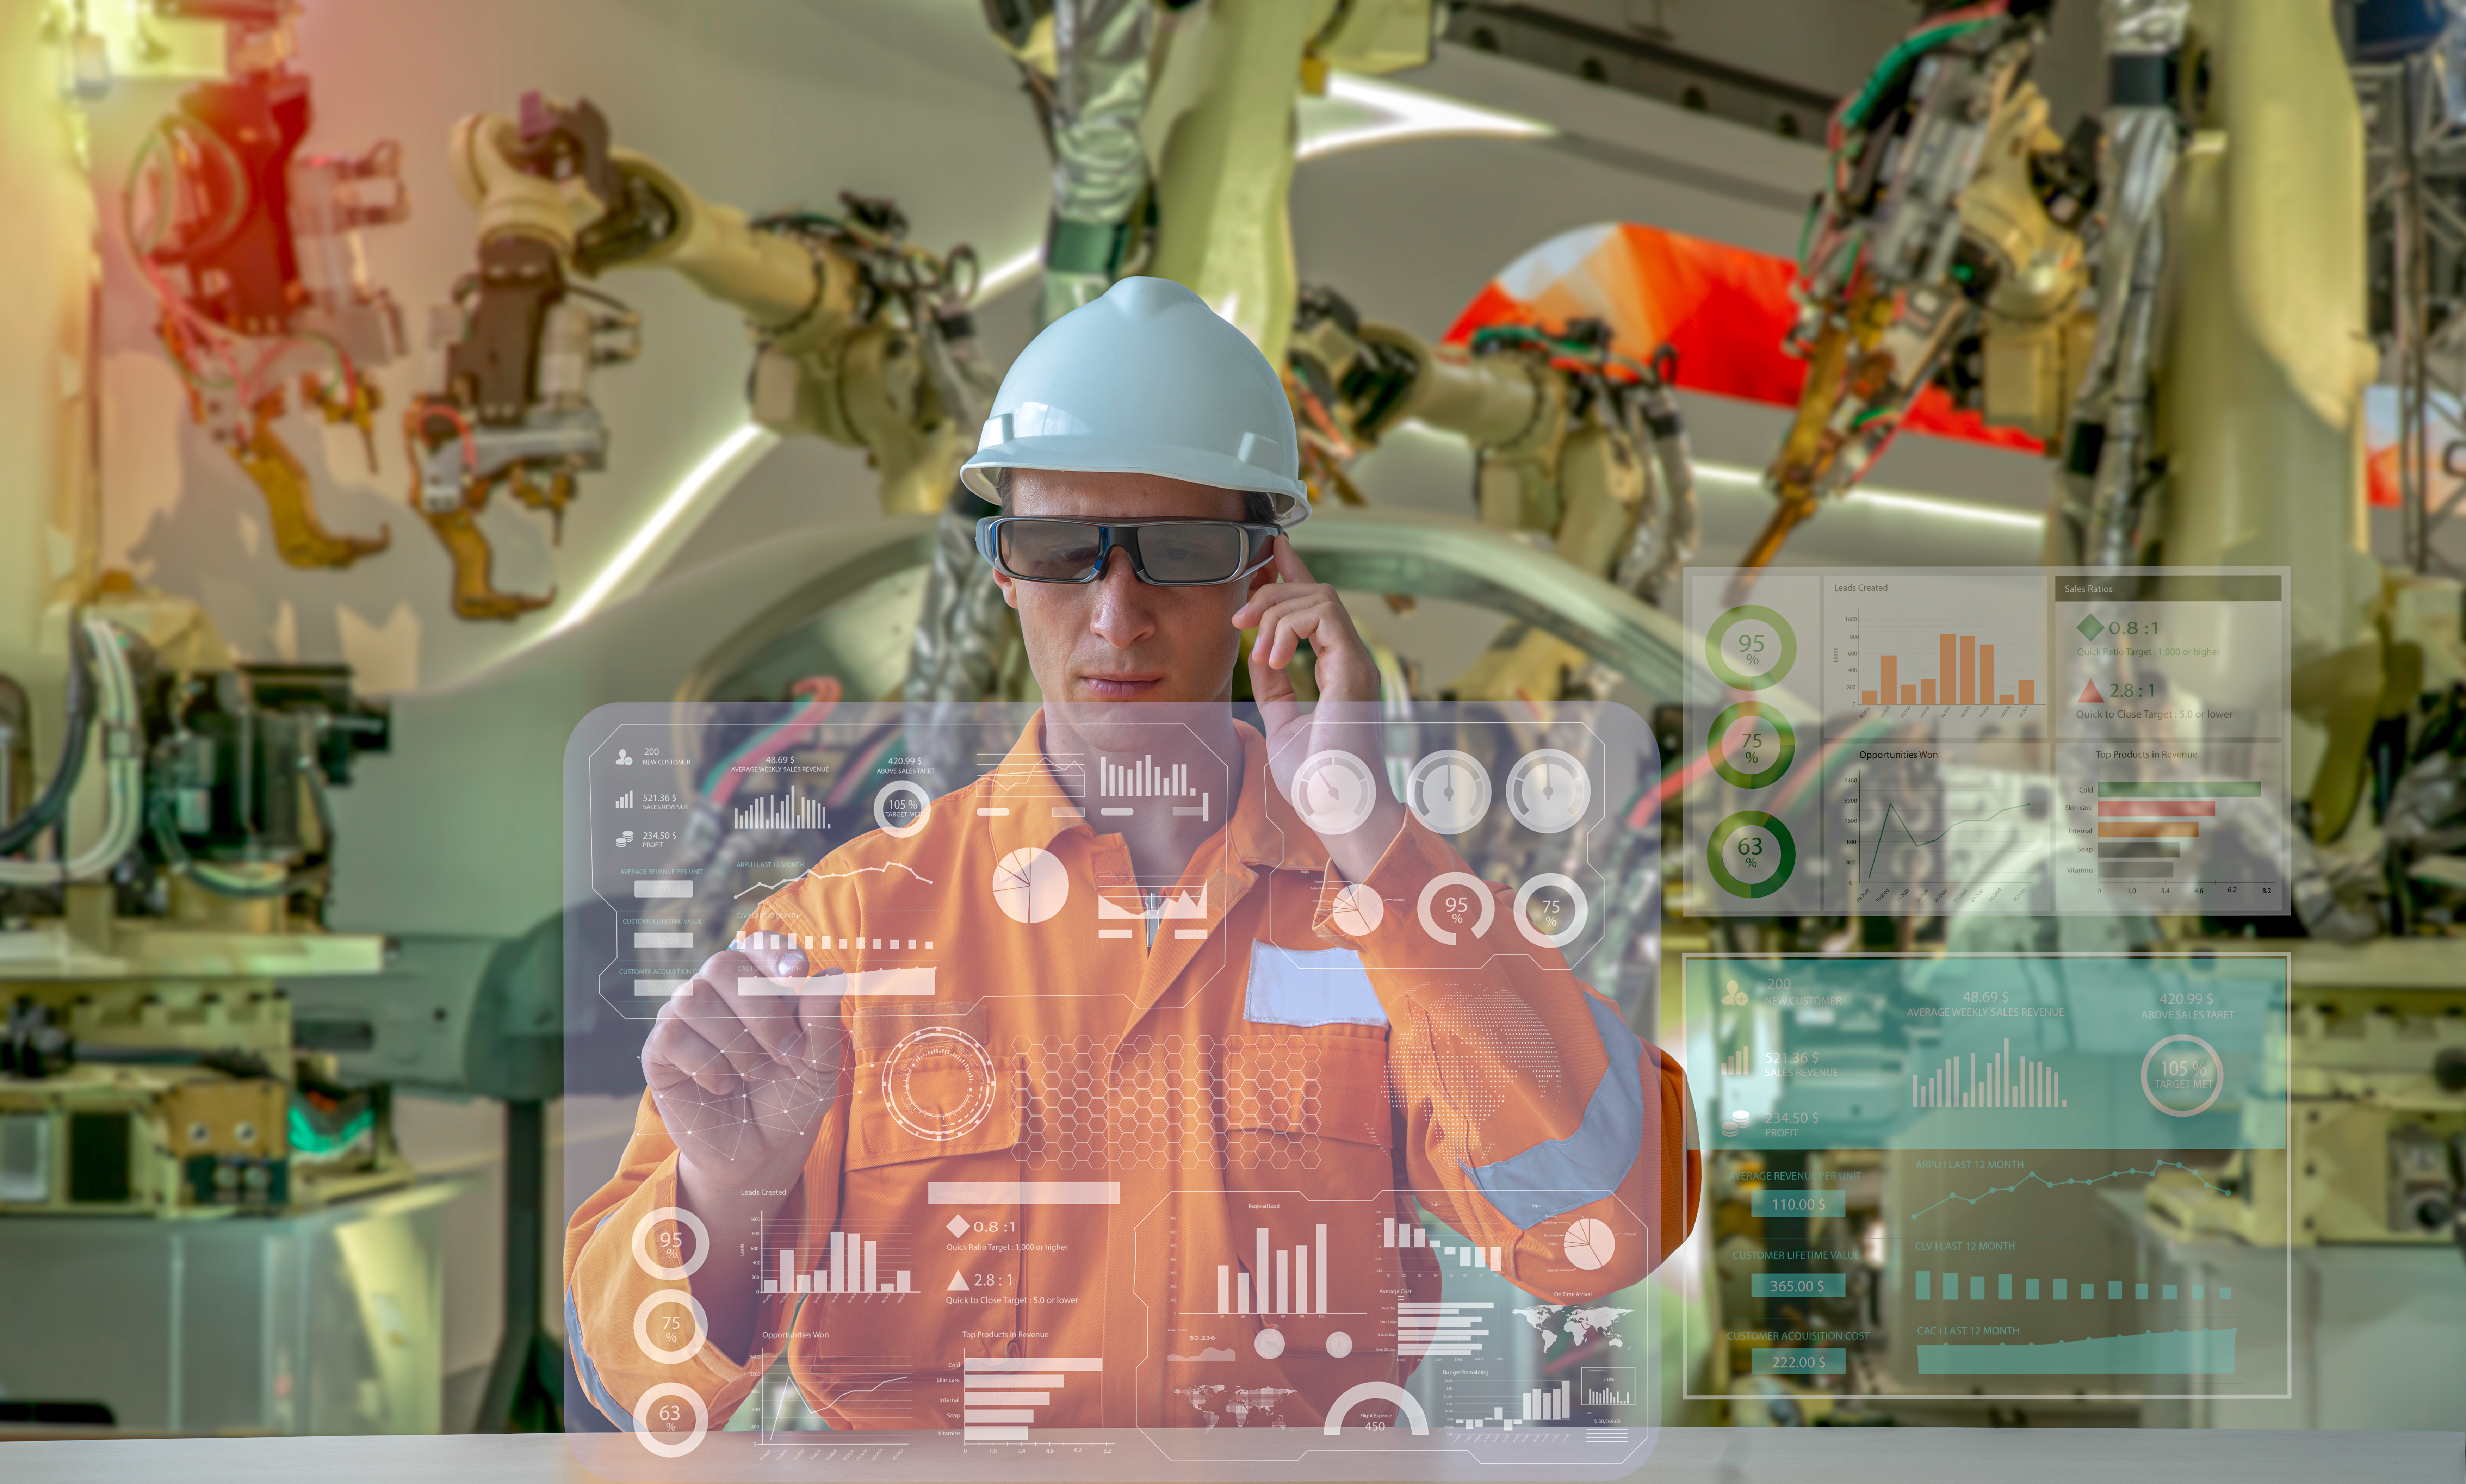 augmented reality application for automation manufacturing training